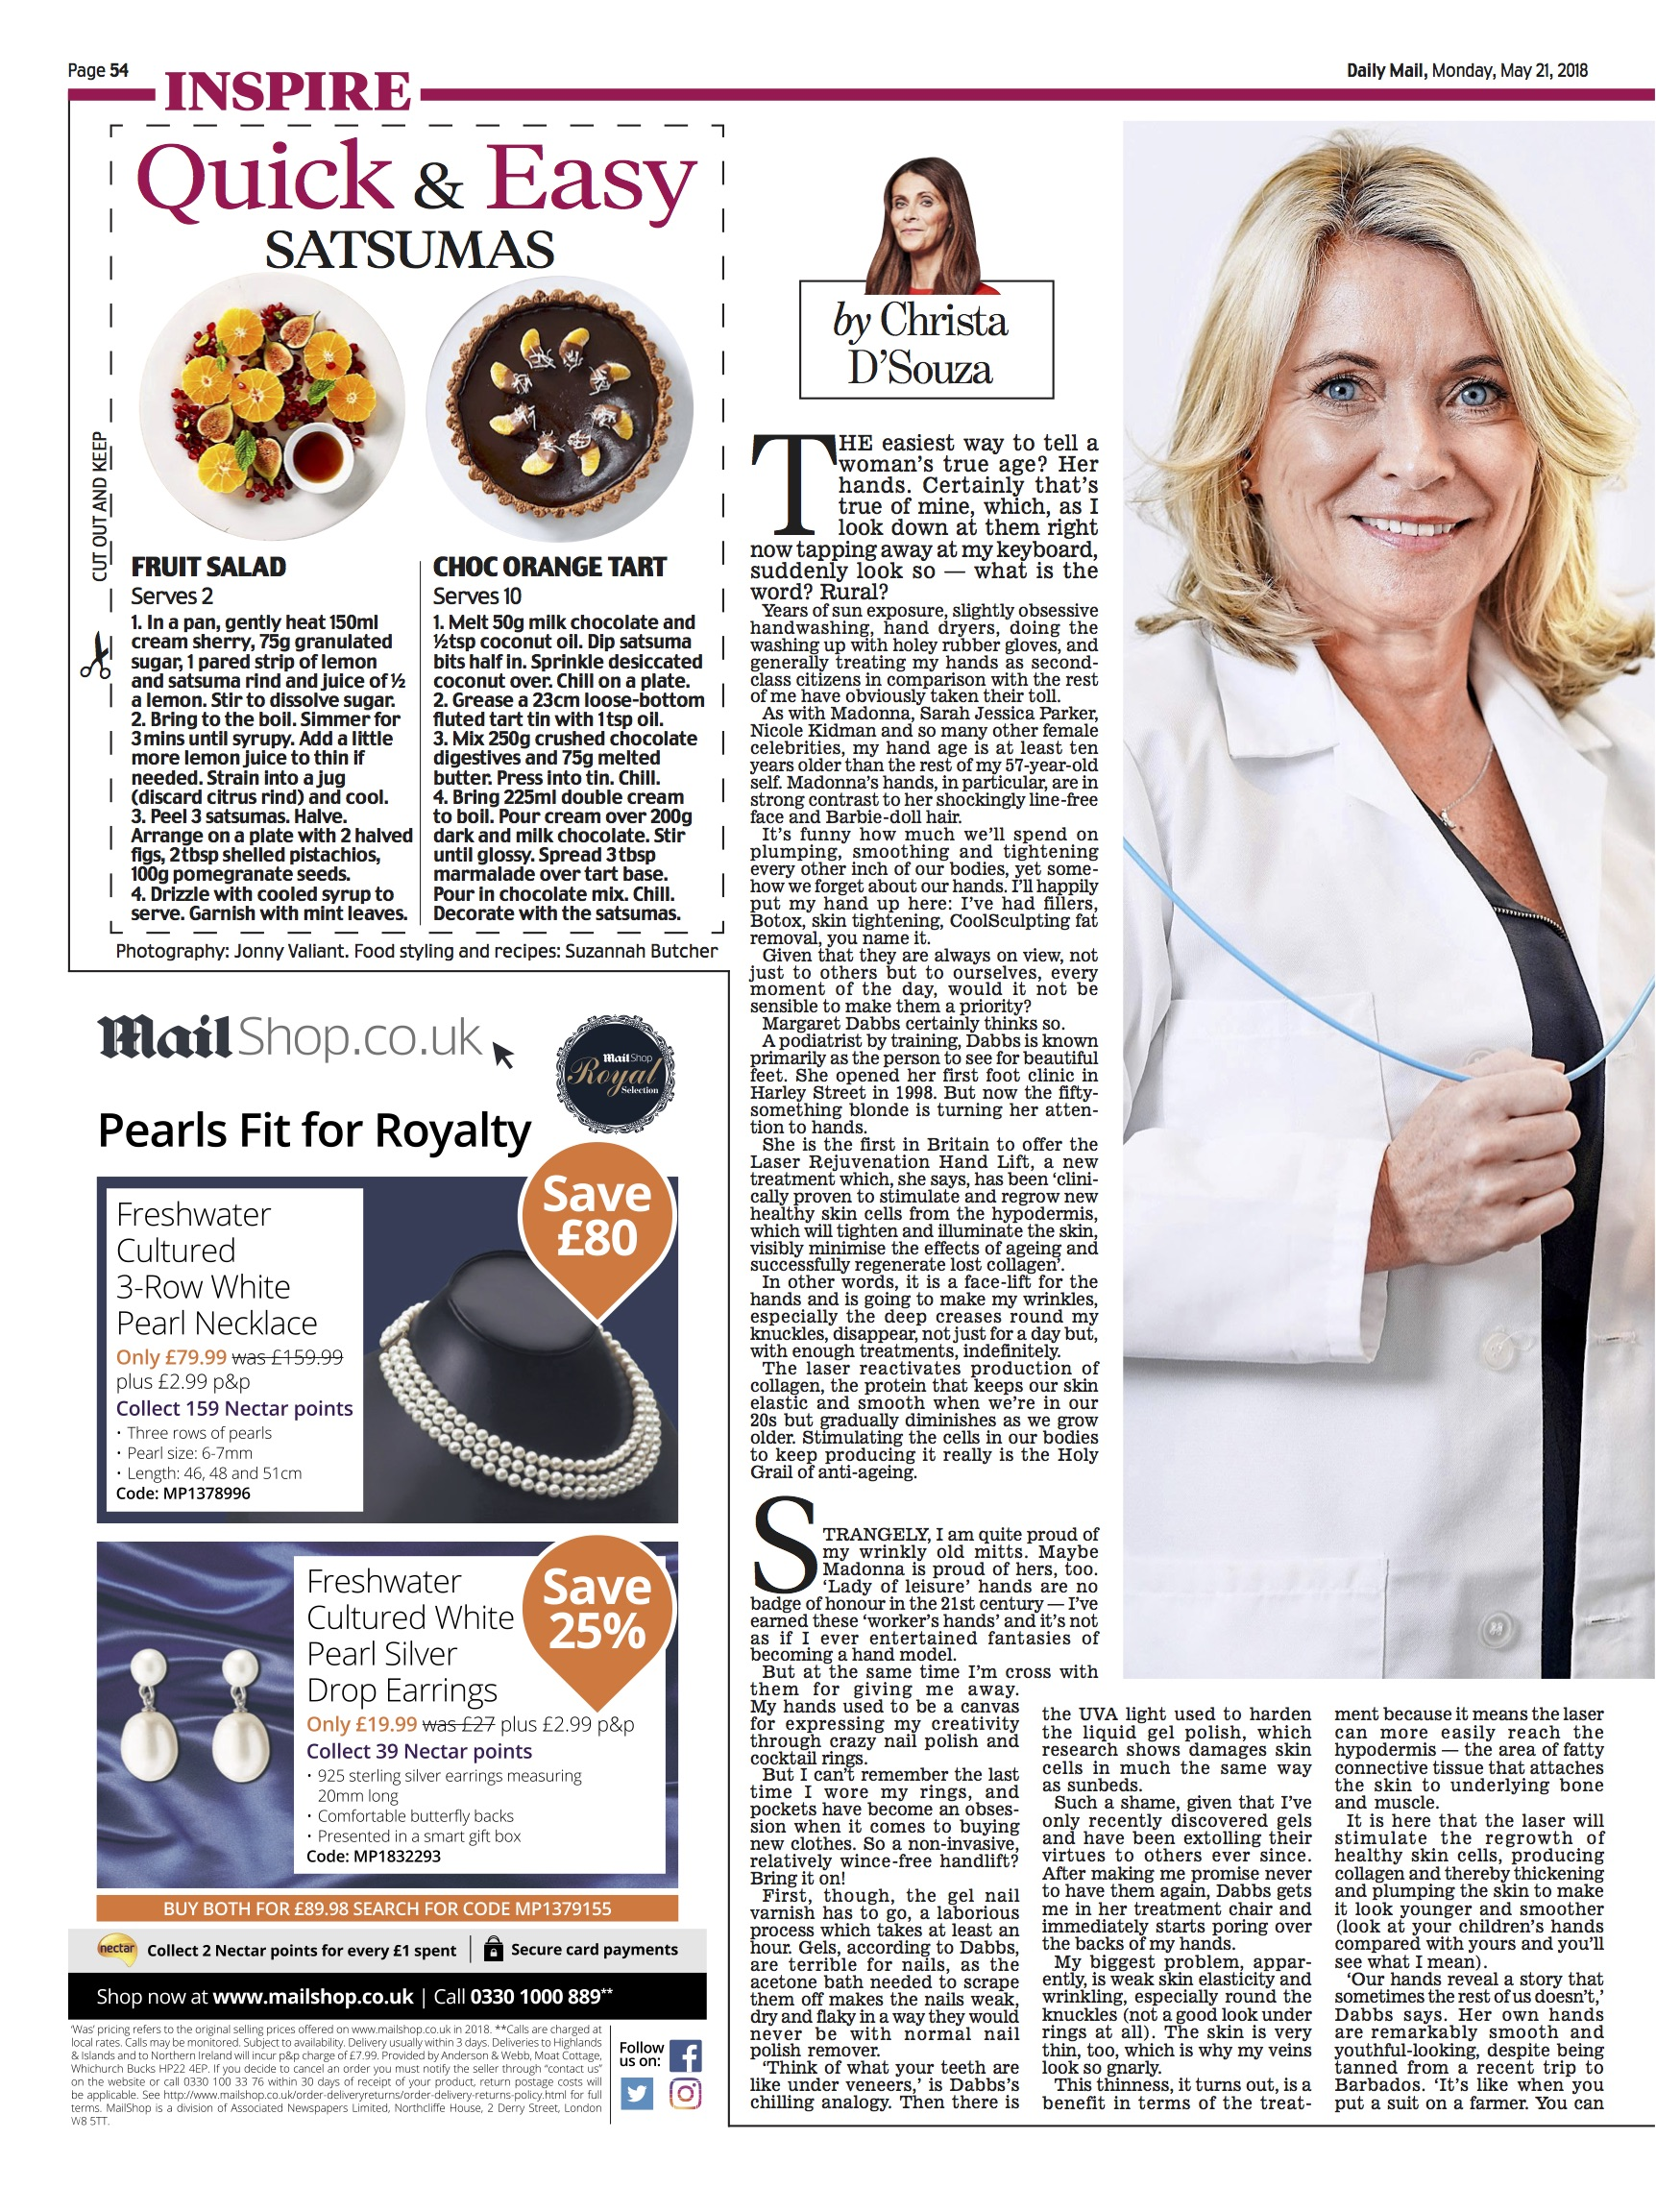 Daily Mail_21stMay18_pg1.jpg